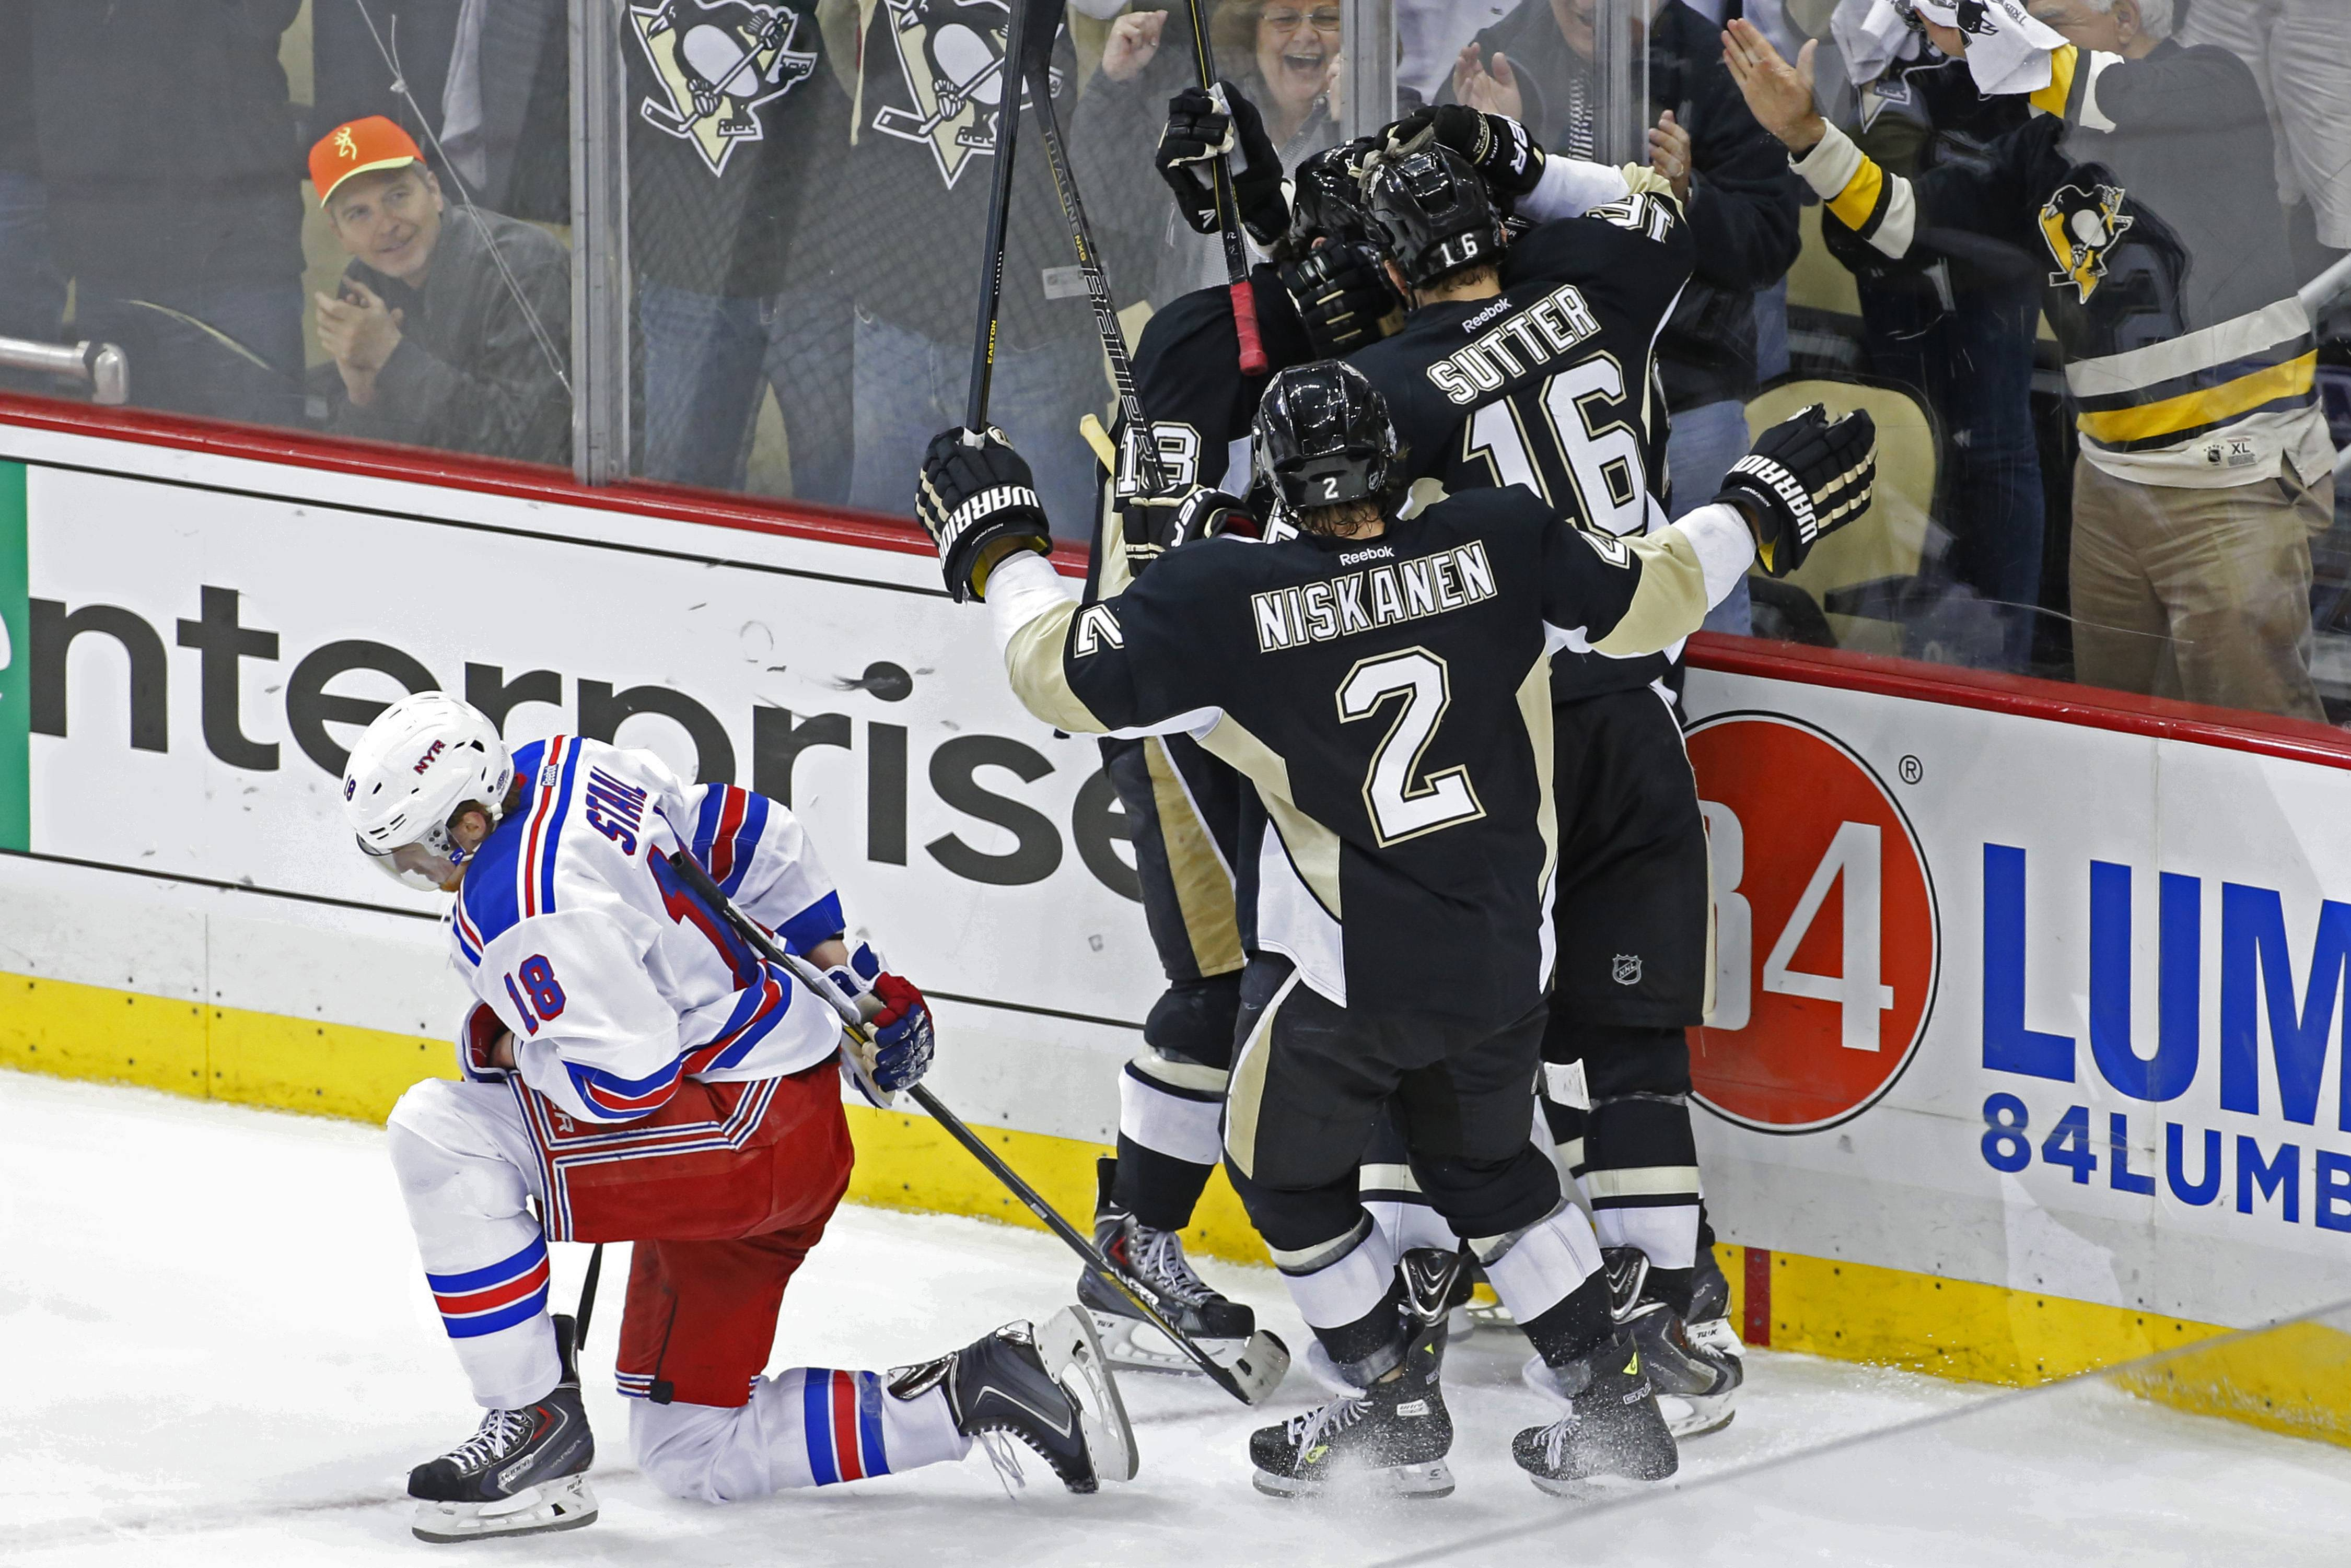 Pittsburgh Penguins' Jussi Jokinen, center not shown, celebrates his goal with teammates as New York Rangers' Marc Staal (18) kneels on the ice in the third period of game 2 of a second-round NHL playoff hockey series against the New York Rangers in Pittsburgh Sunday, May 4, 2014. The Penguins won 3-0, to tie the series at 1-1.